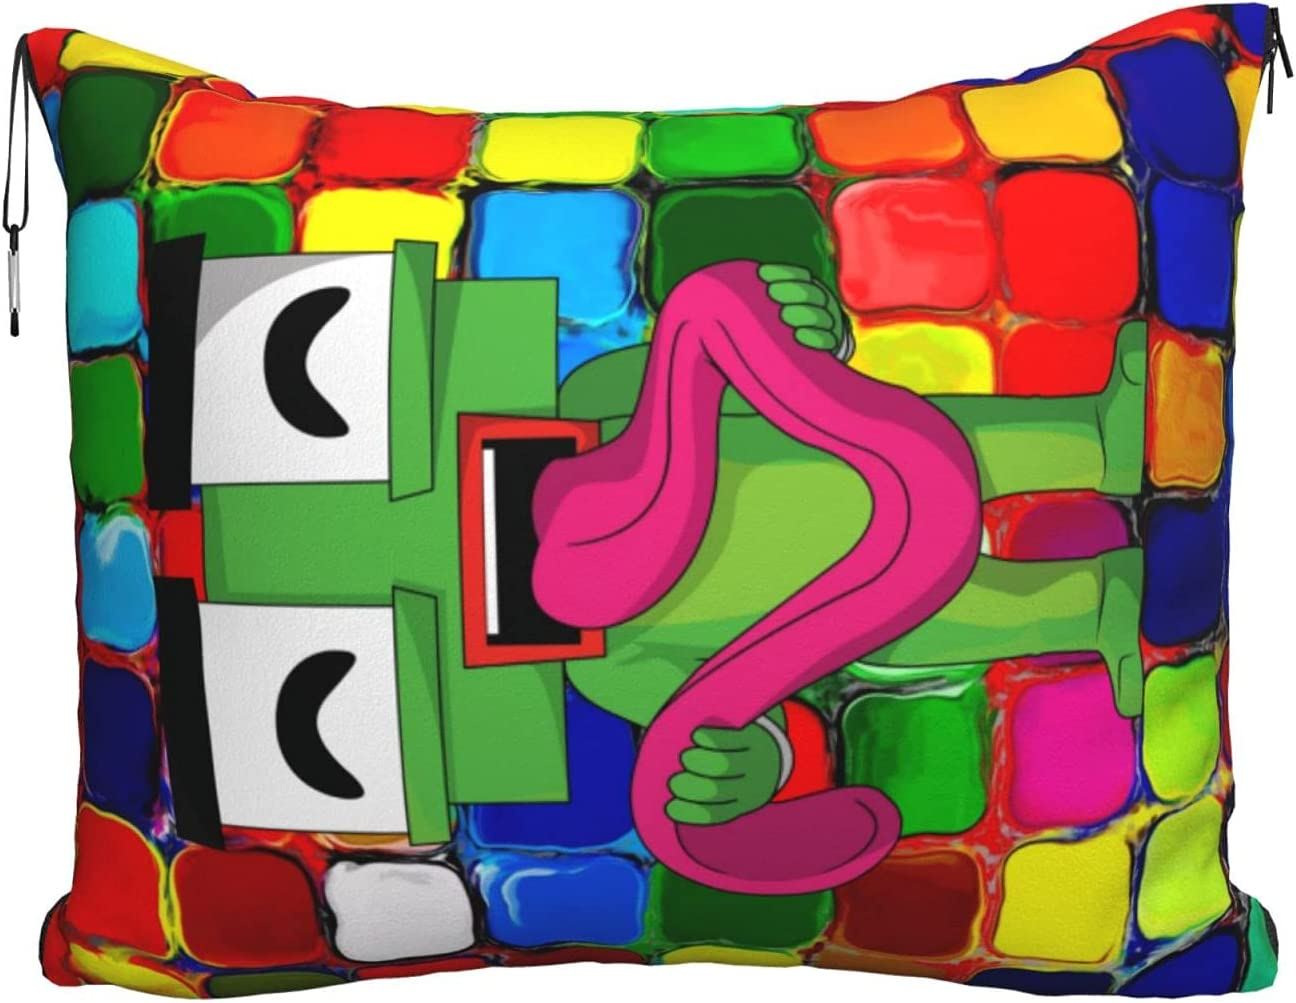 Unspeakable Travel Blanket Pillow - Premium Airpl Tulsa Mall 2 in Free shipping on posting reviews Flannel 1